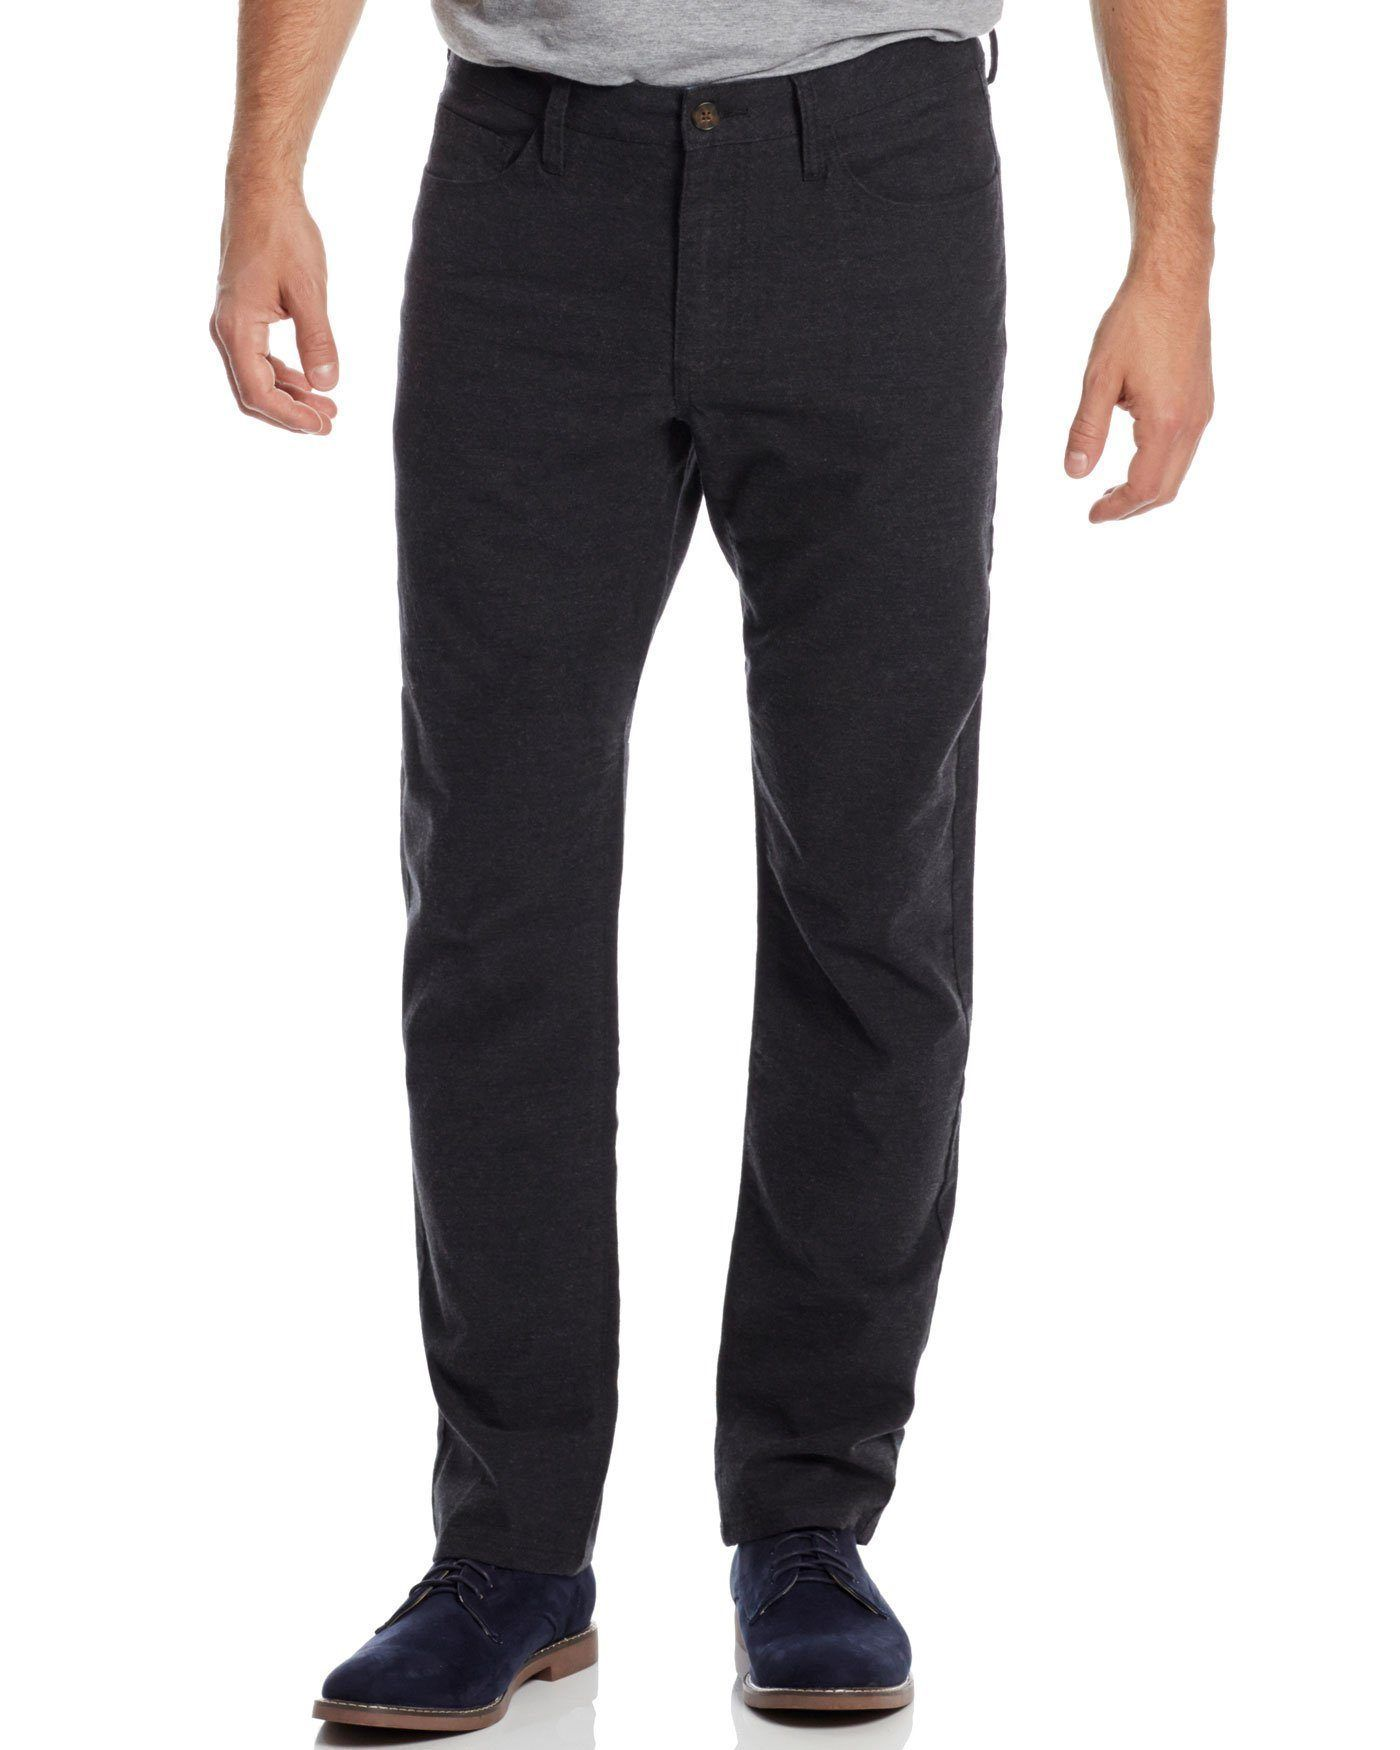 Pants - WELLS 5 POCKET FLANNEL PANT - OAKLAND SLIM